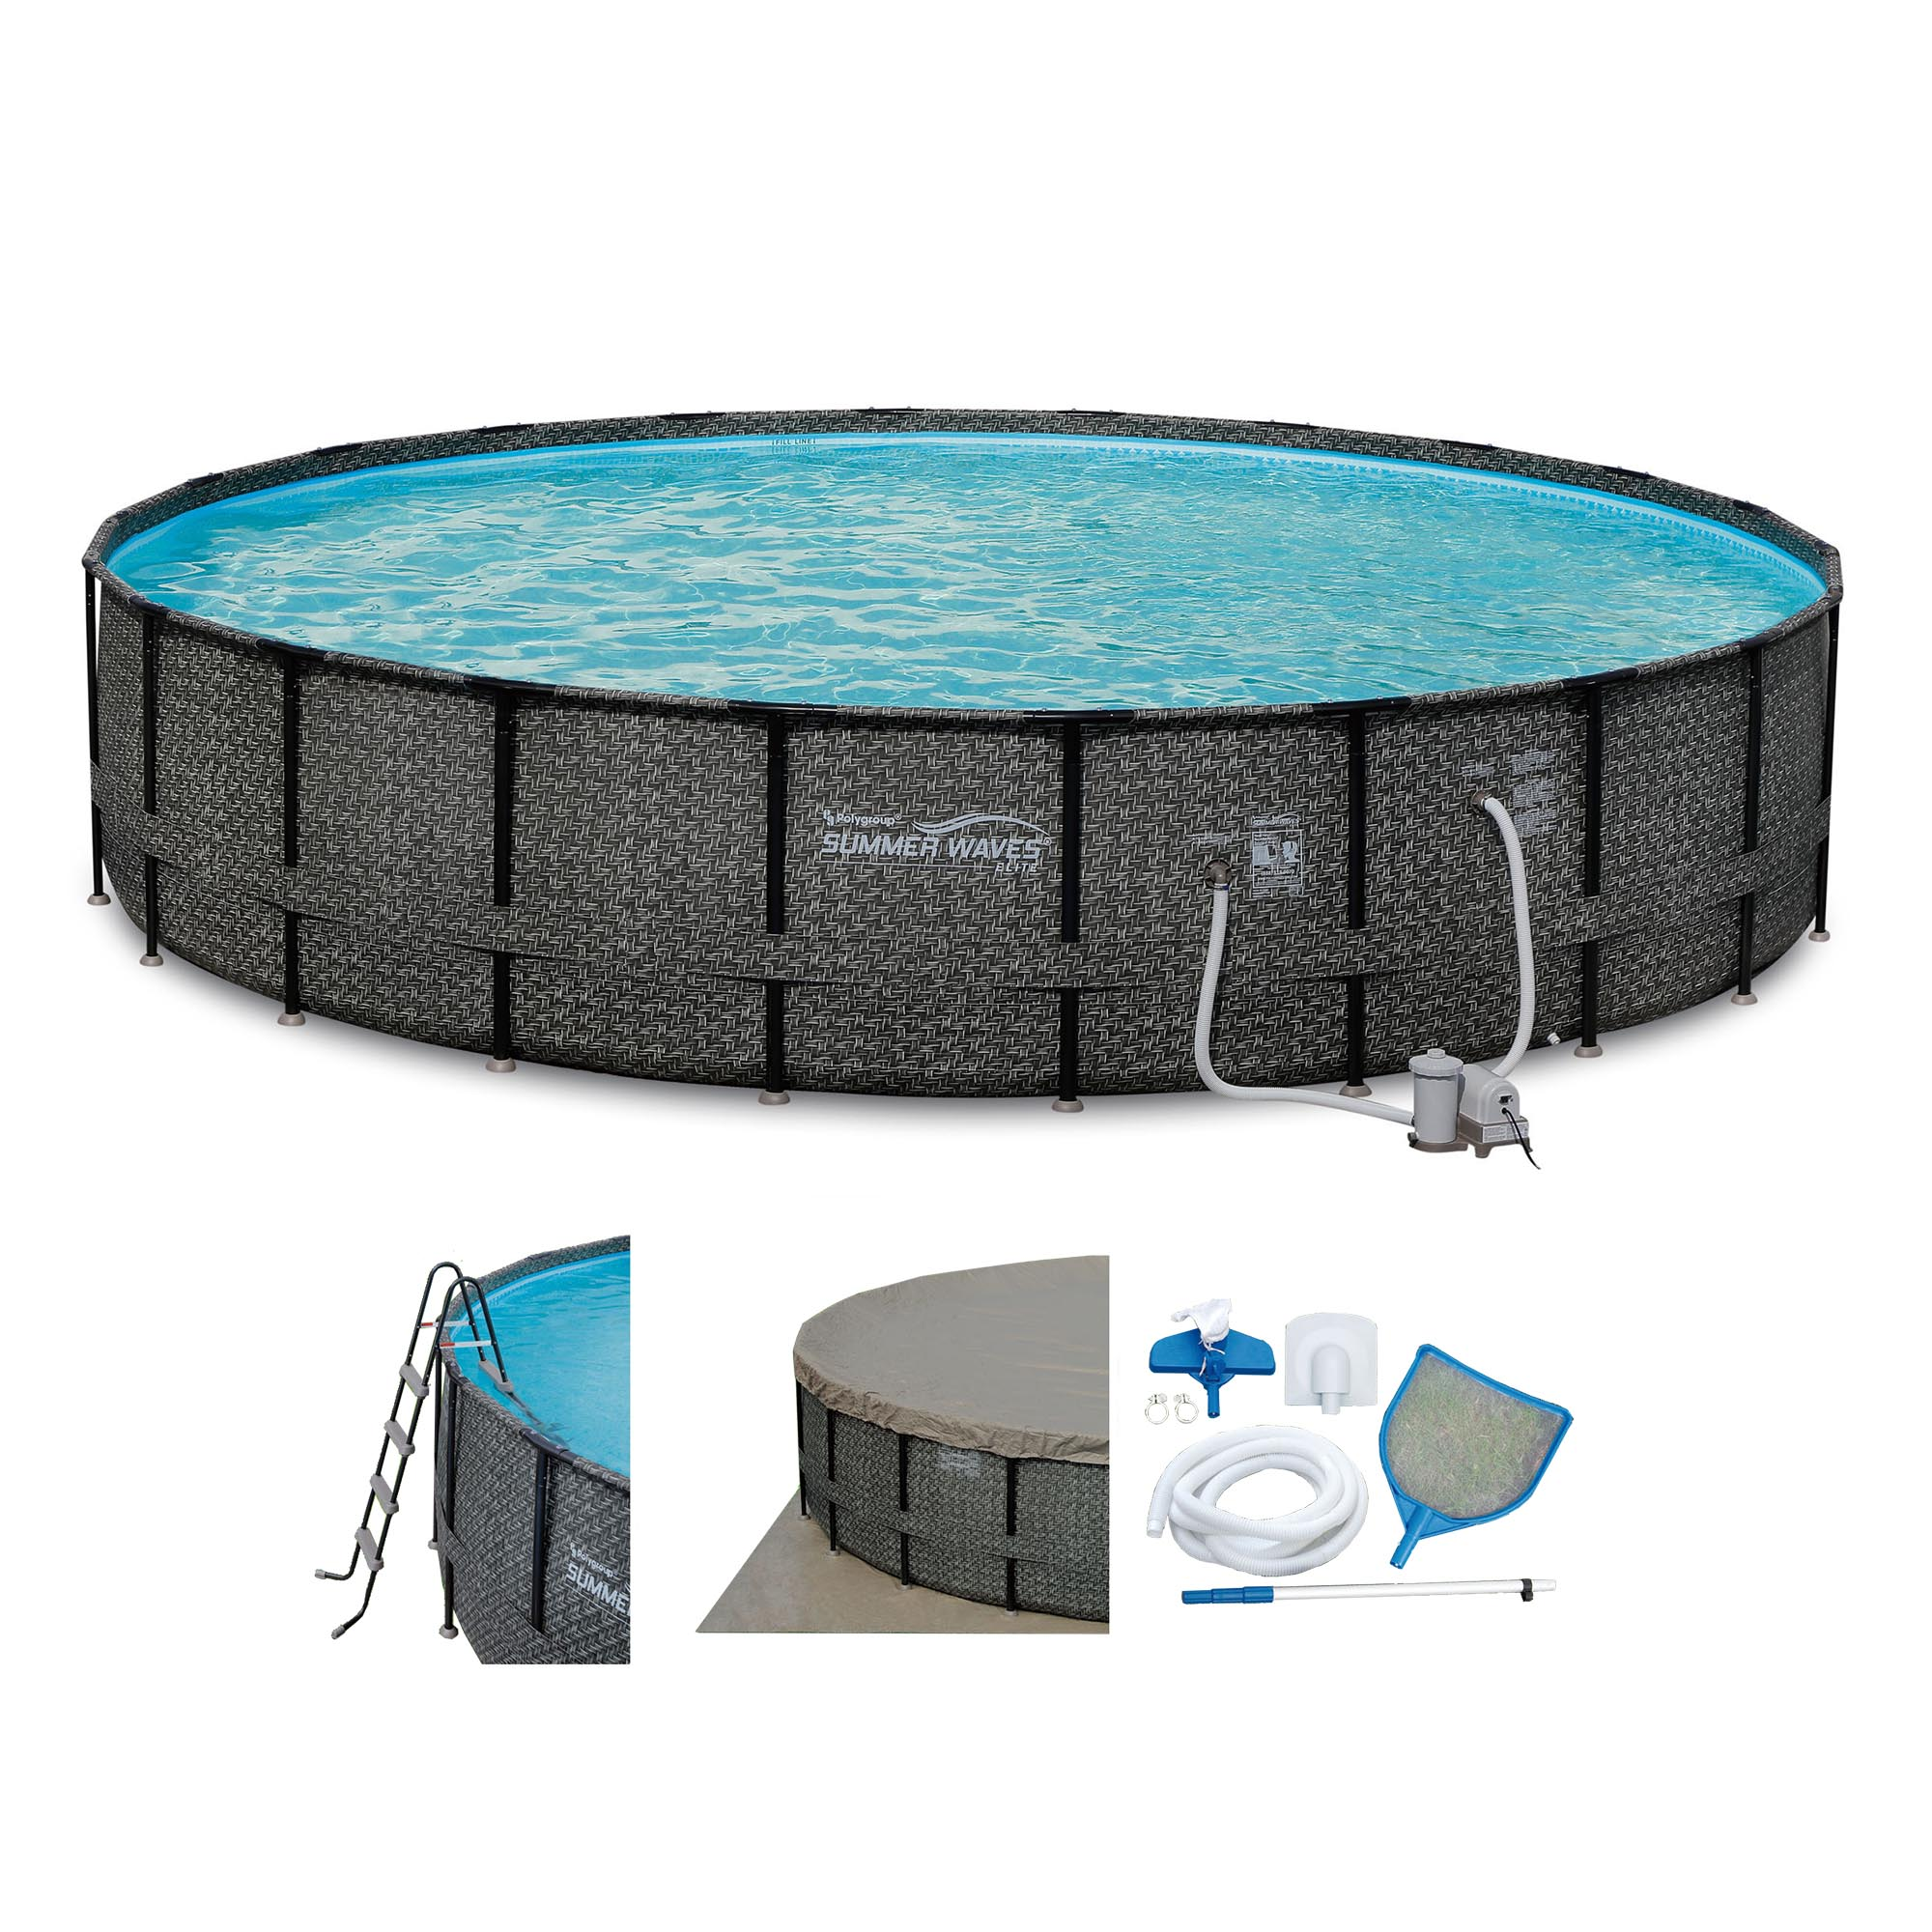 Summer waves elite wicker print 22 39 x 52 above ground for Billige pool sets